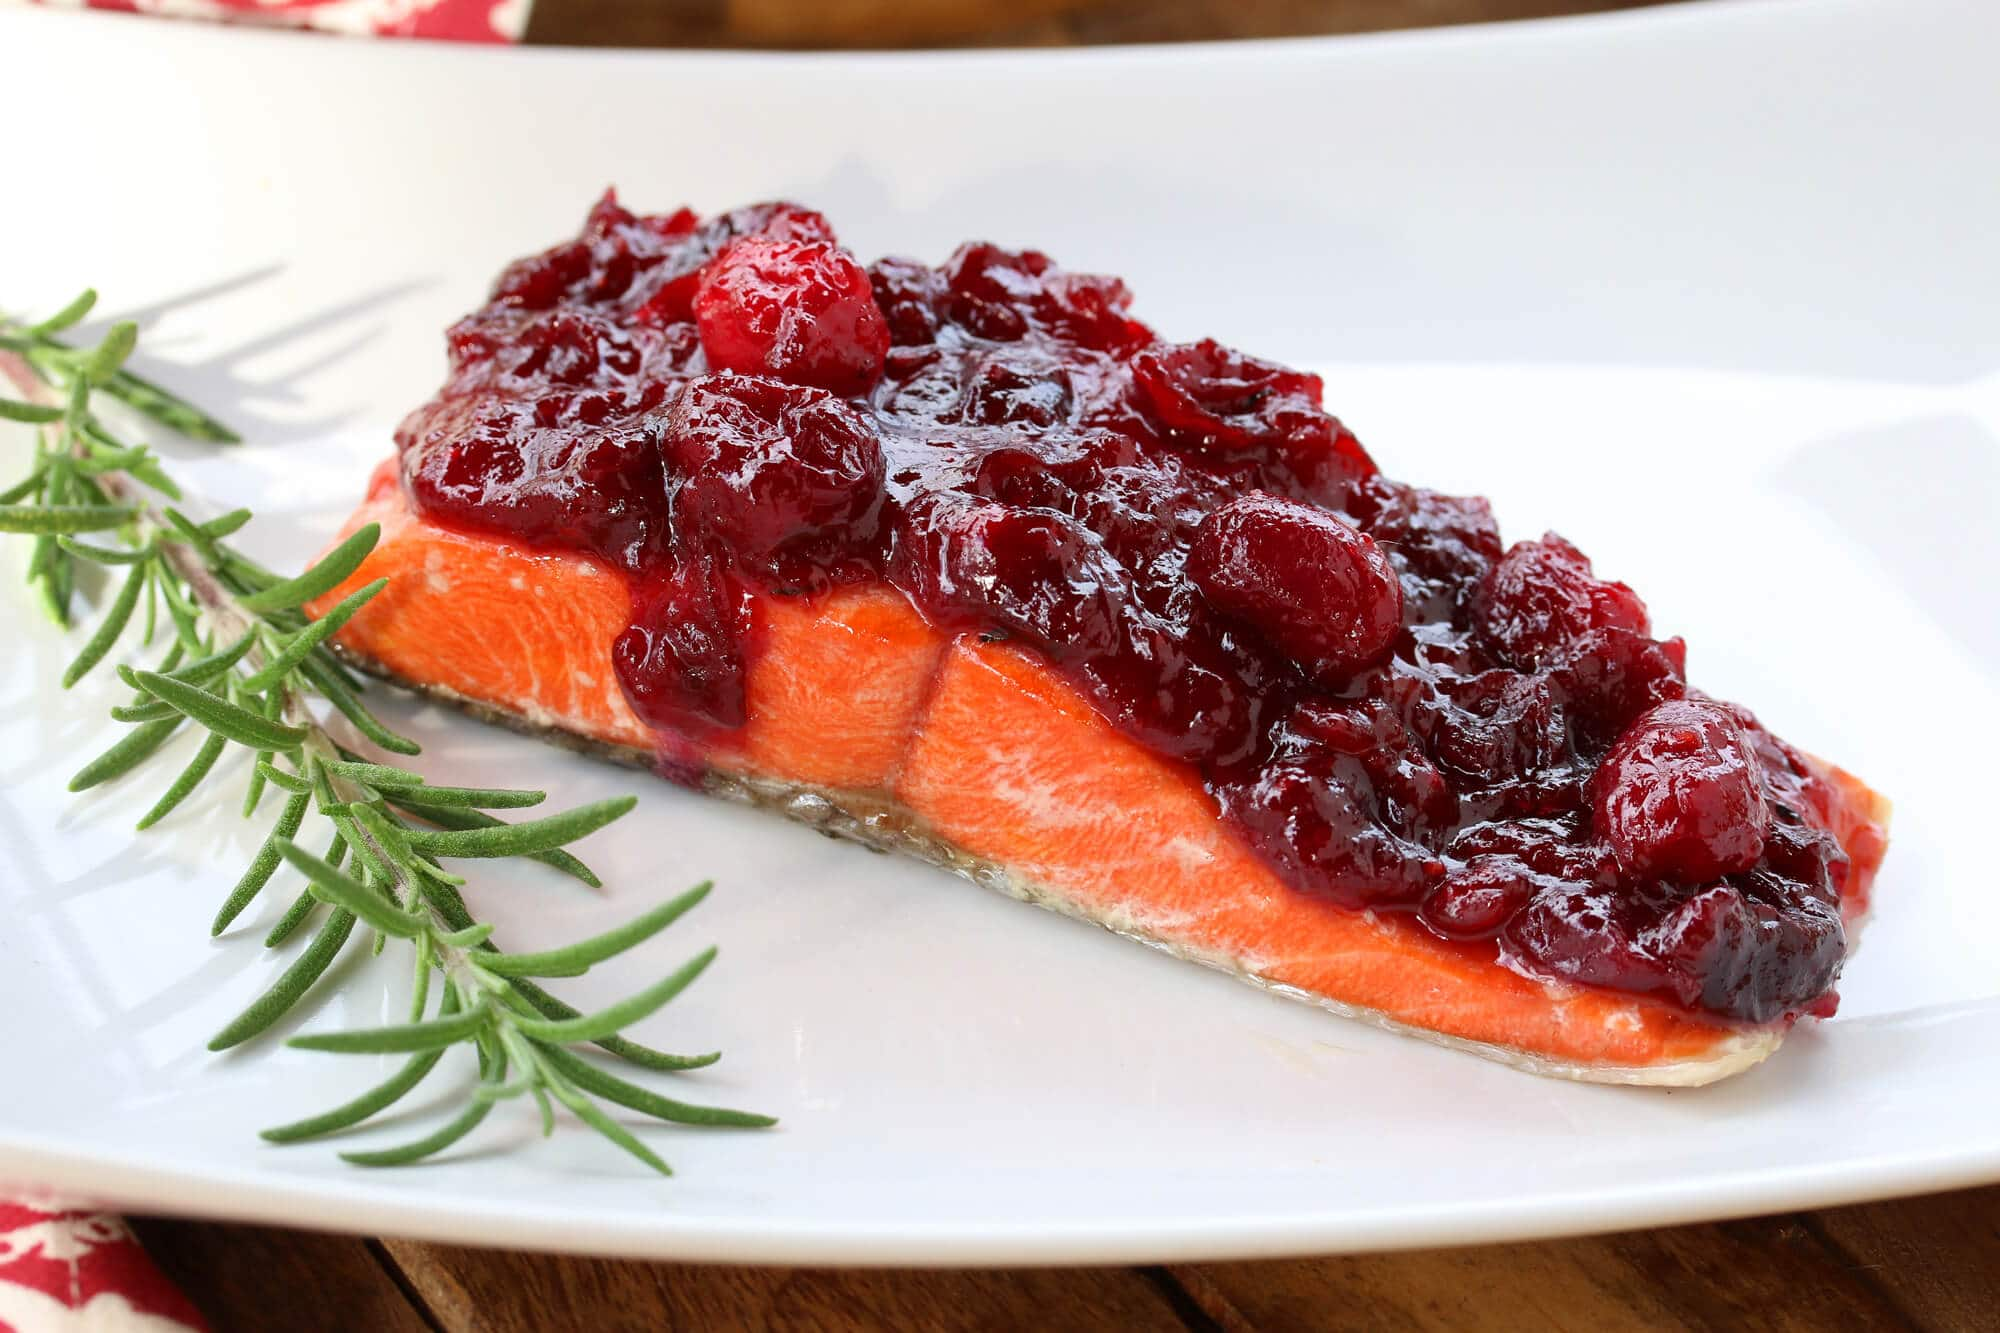 salmon recipe cranberry sauce mustard dijon herbs ginger christmas holidays thanksgiving recipe easy fast sous vide baked grilled broiled pan fried